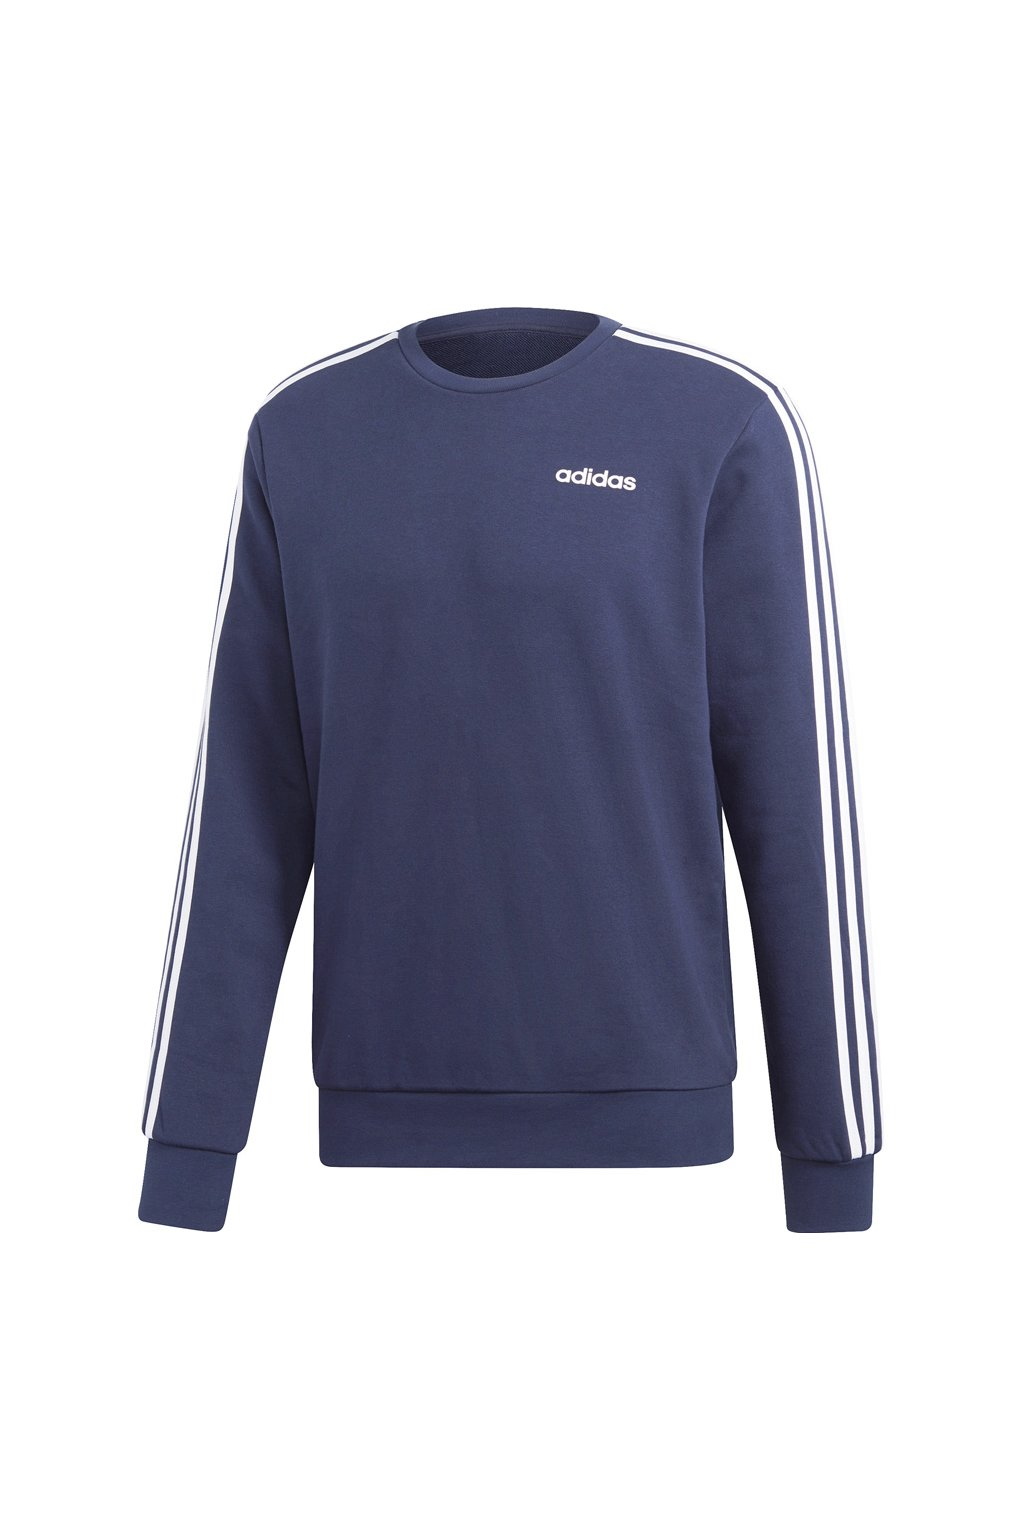 Adidas pánska mikina Essentials 3 Stripes Crewneck navy blue FT DU0484